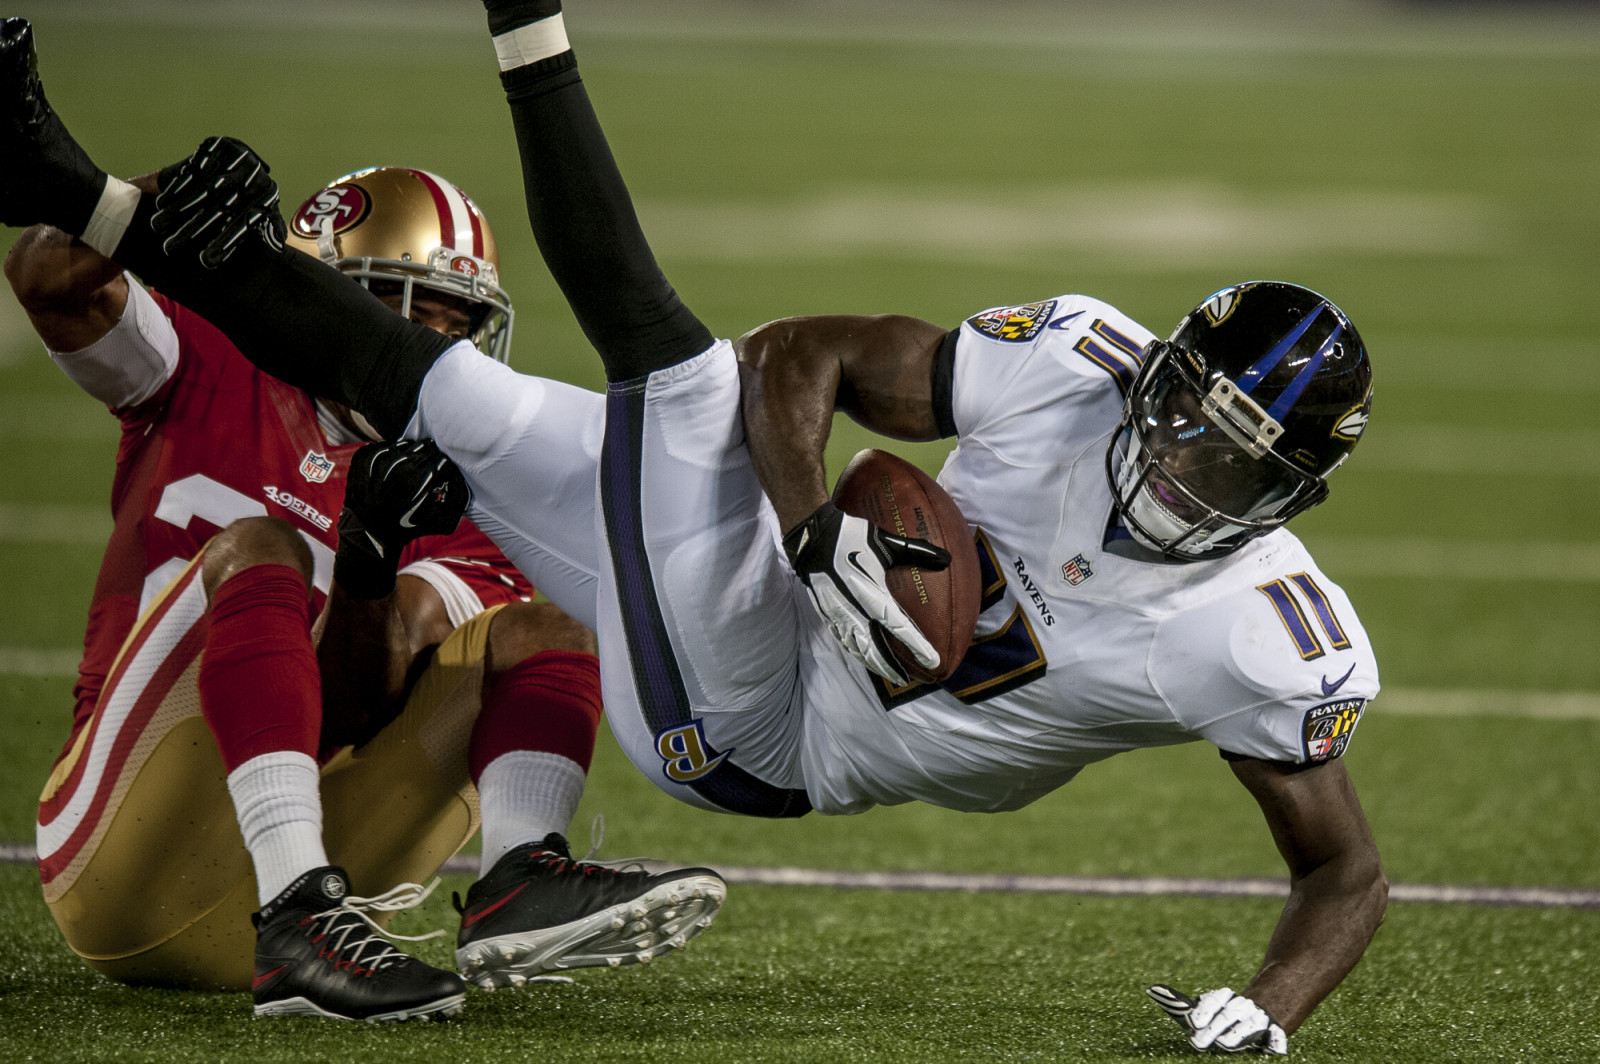 Baltimore Ravens wide-receiver Kamar Aiken is tackled during the second half against the San Francisco 49ers during the first quarter of their pre-season game at M&T Bank Stadium on August 7, 2014 in Baltimore, Maryland. UPI/Pete Marovich